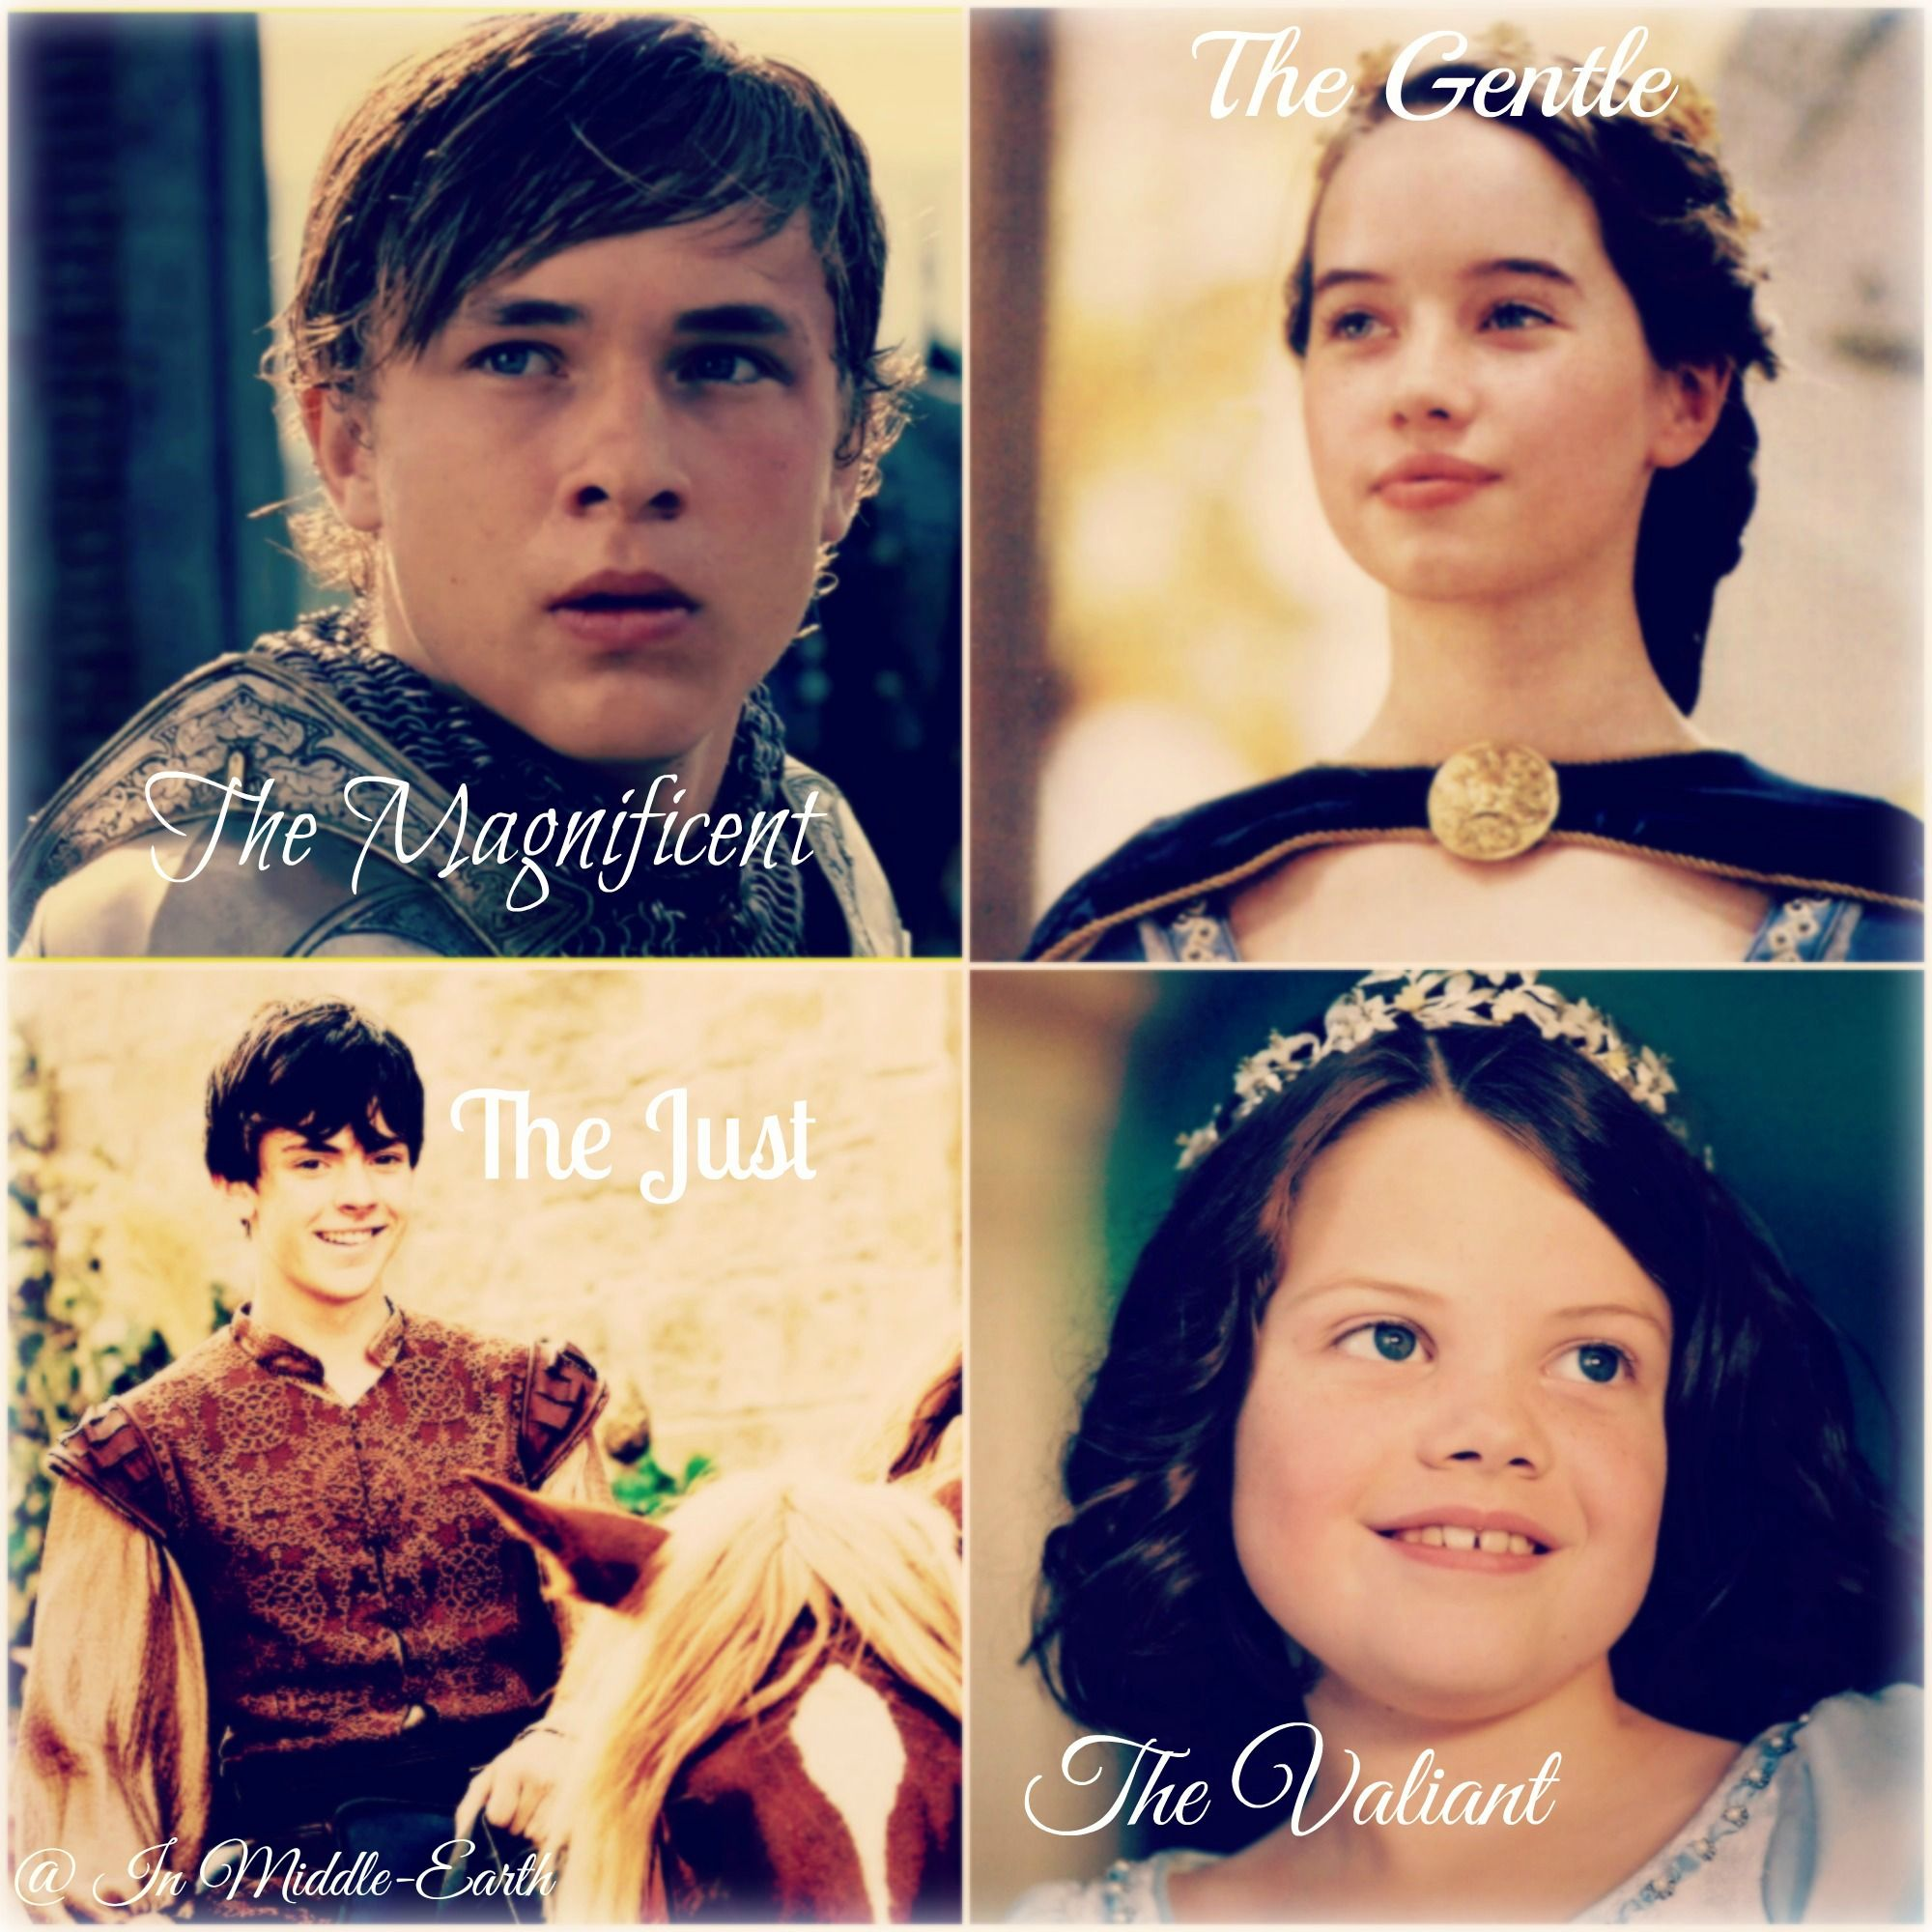 My Photo Edit Of Peter Susan Edmund And Lucy Love All Four Of